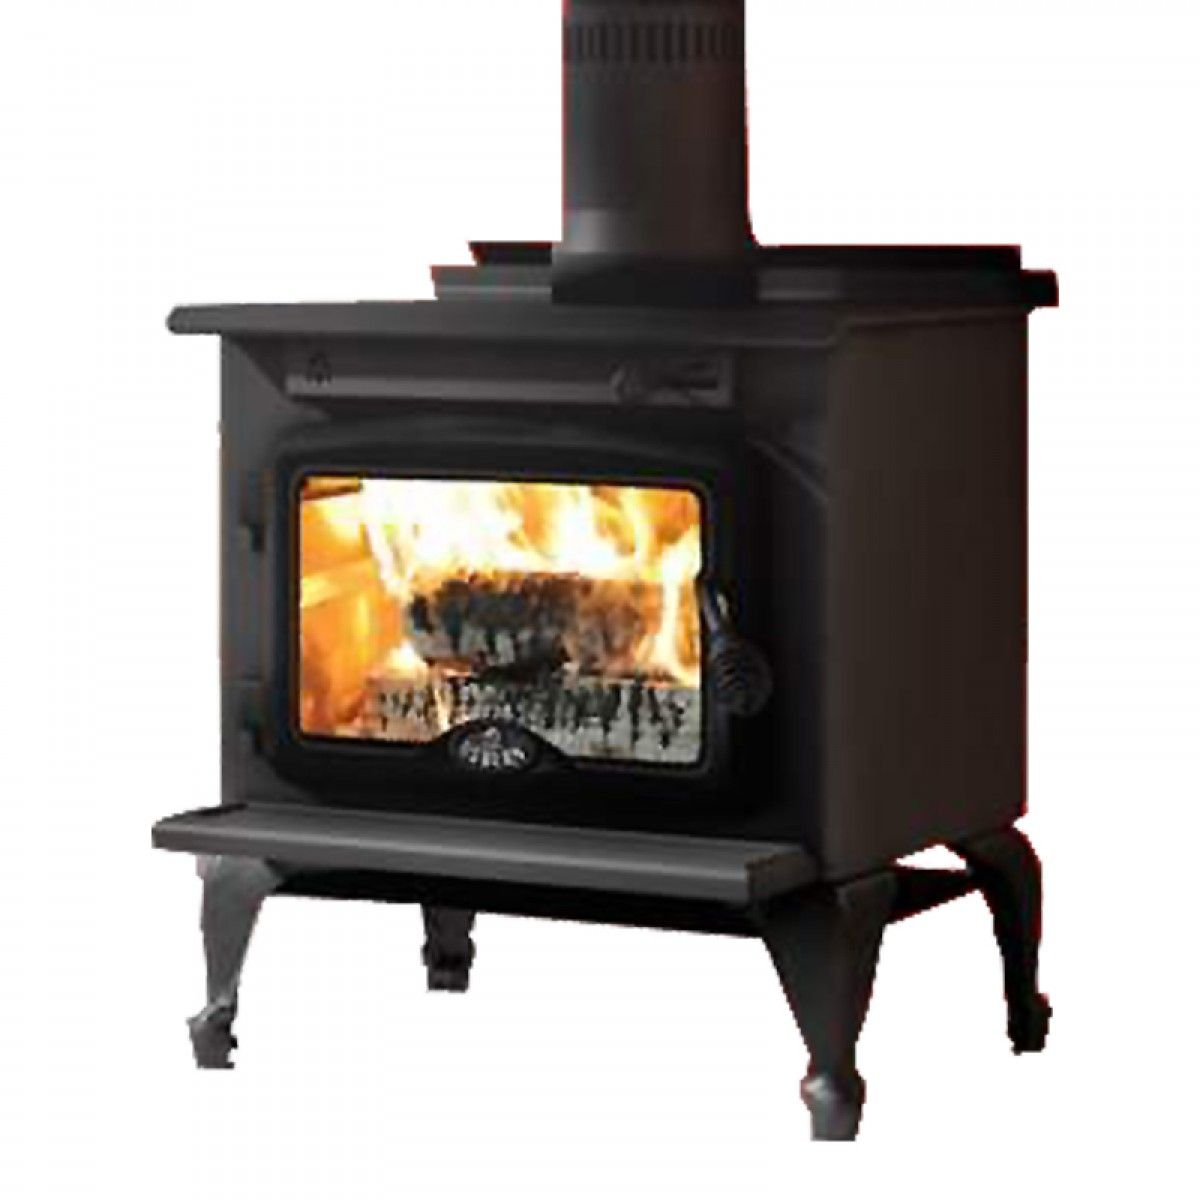 wood fireplace stovax stoves base vogue stove midline product eco burning simply small